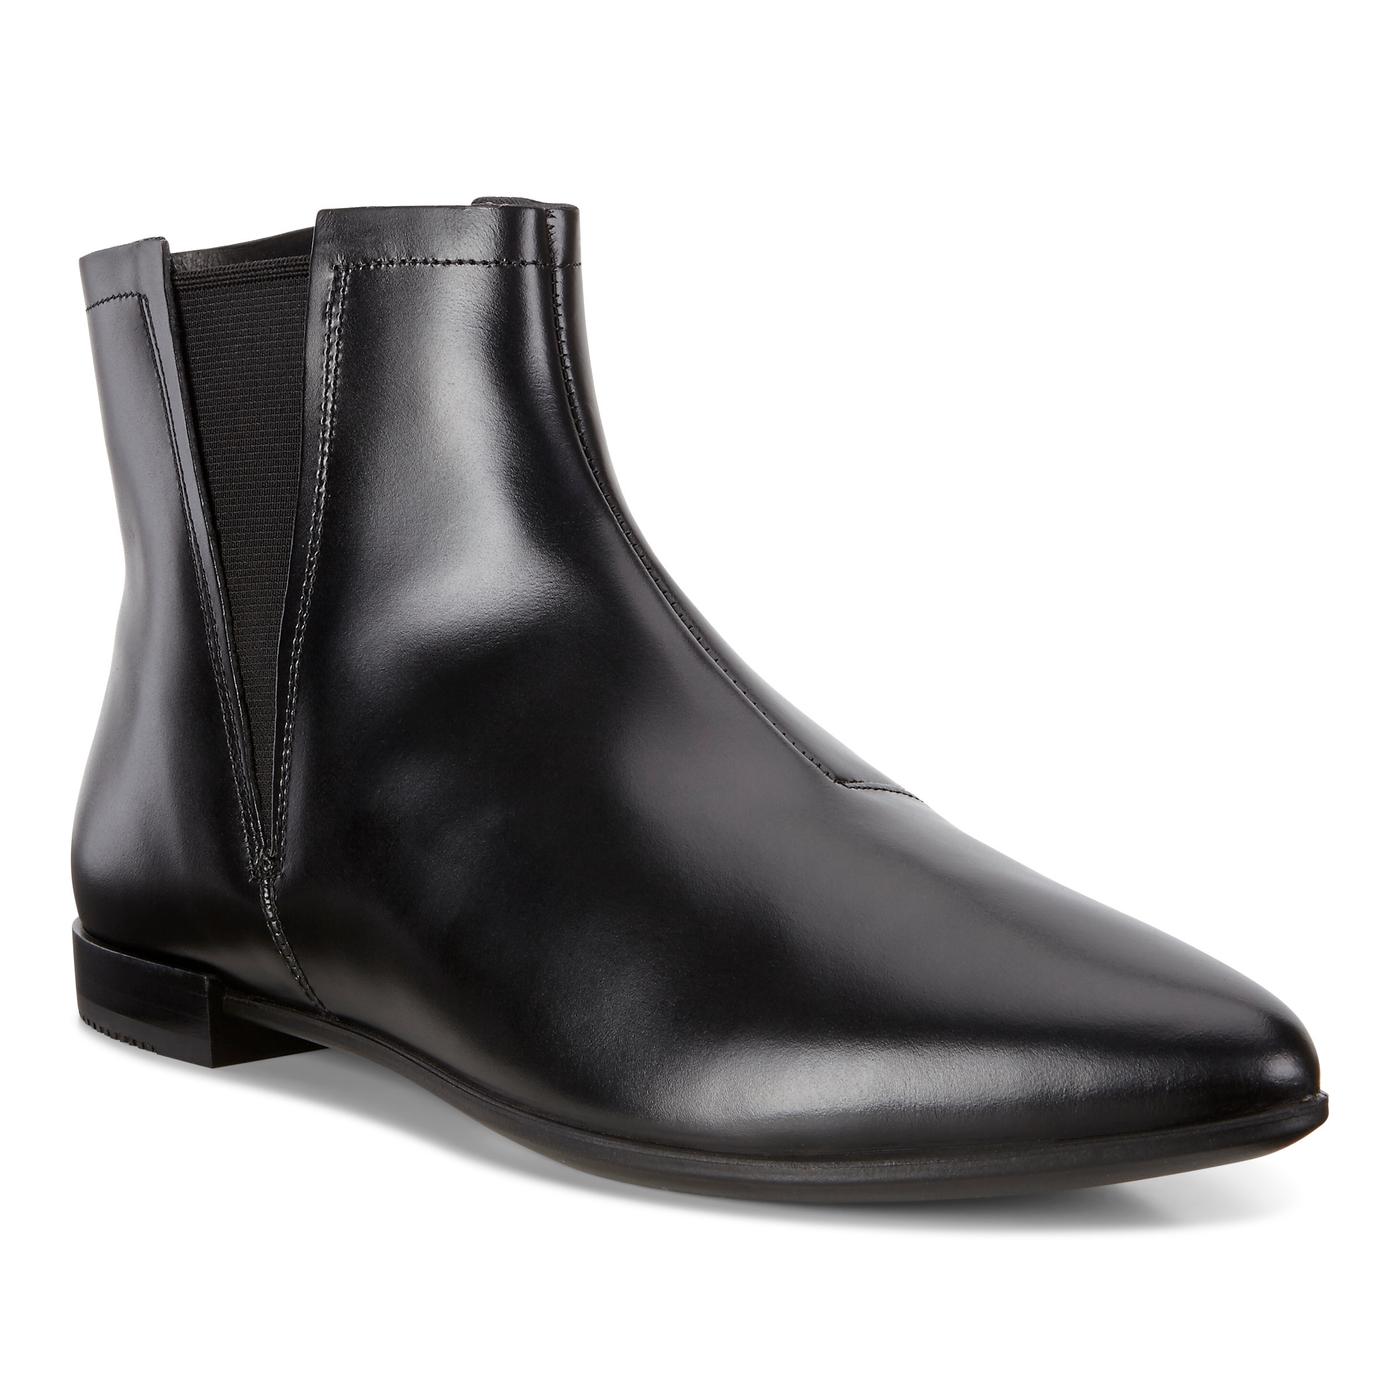 ECCO SHAPE POINTY BALLERINA Ankle Boot